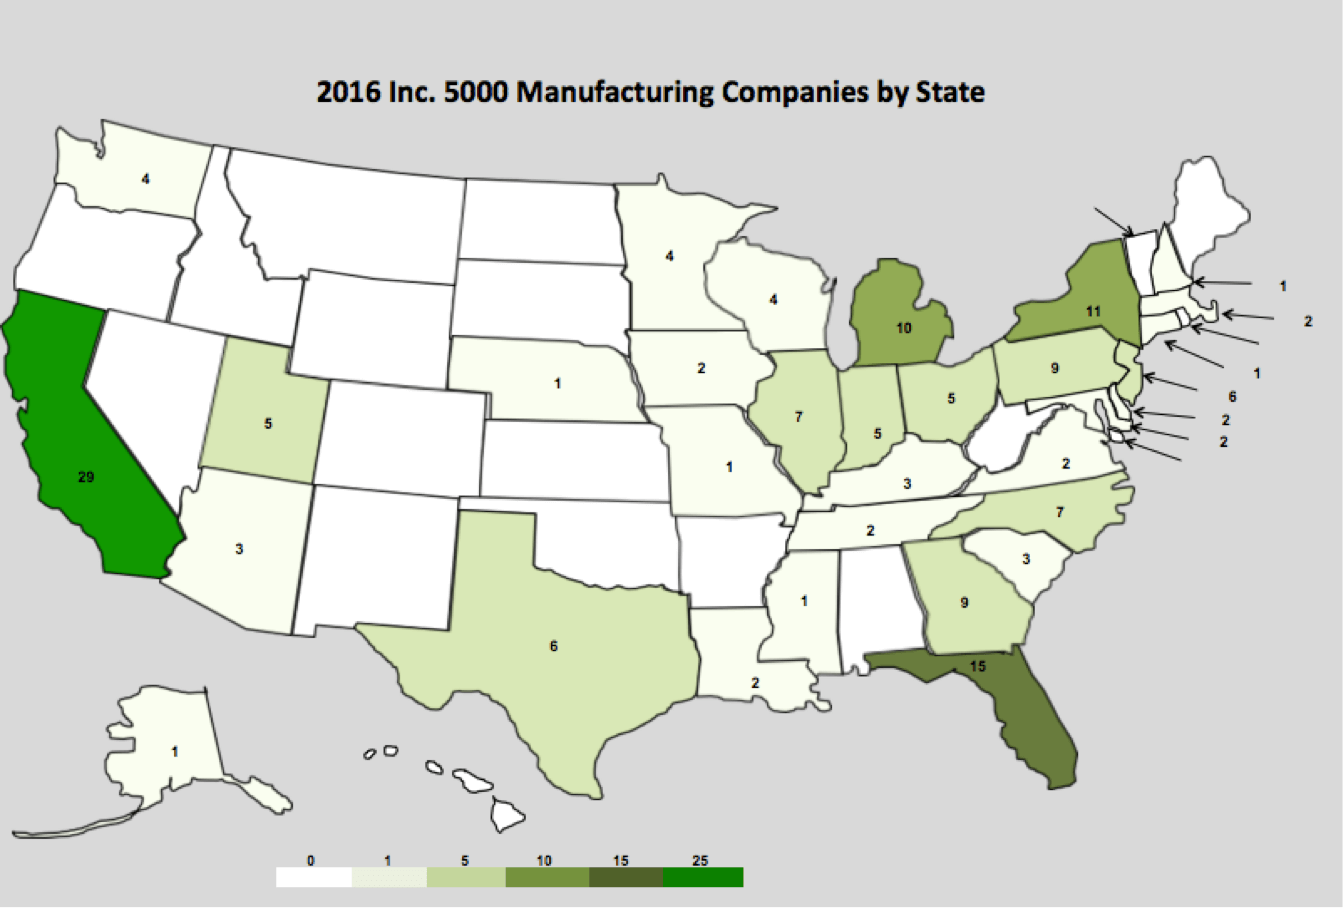 Inc. 5000 Manufacturing Companies by State